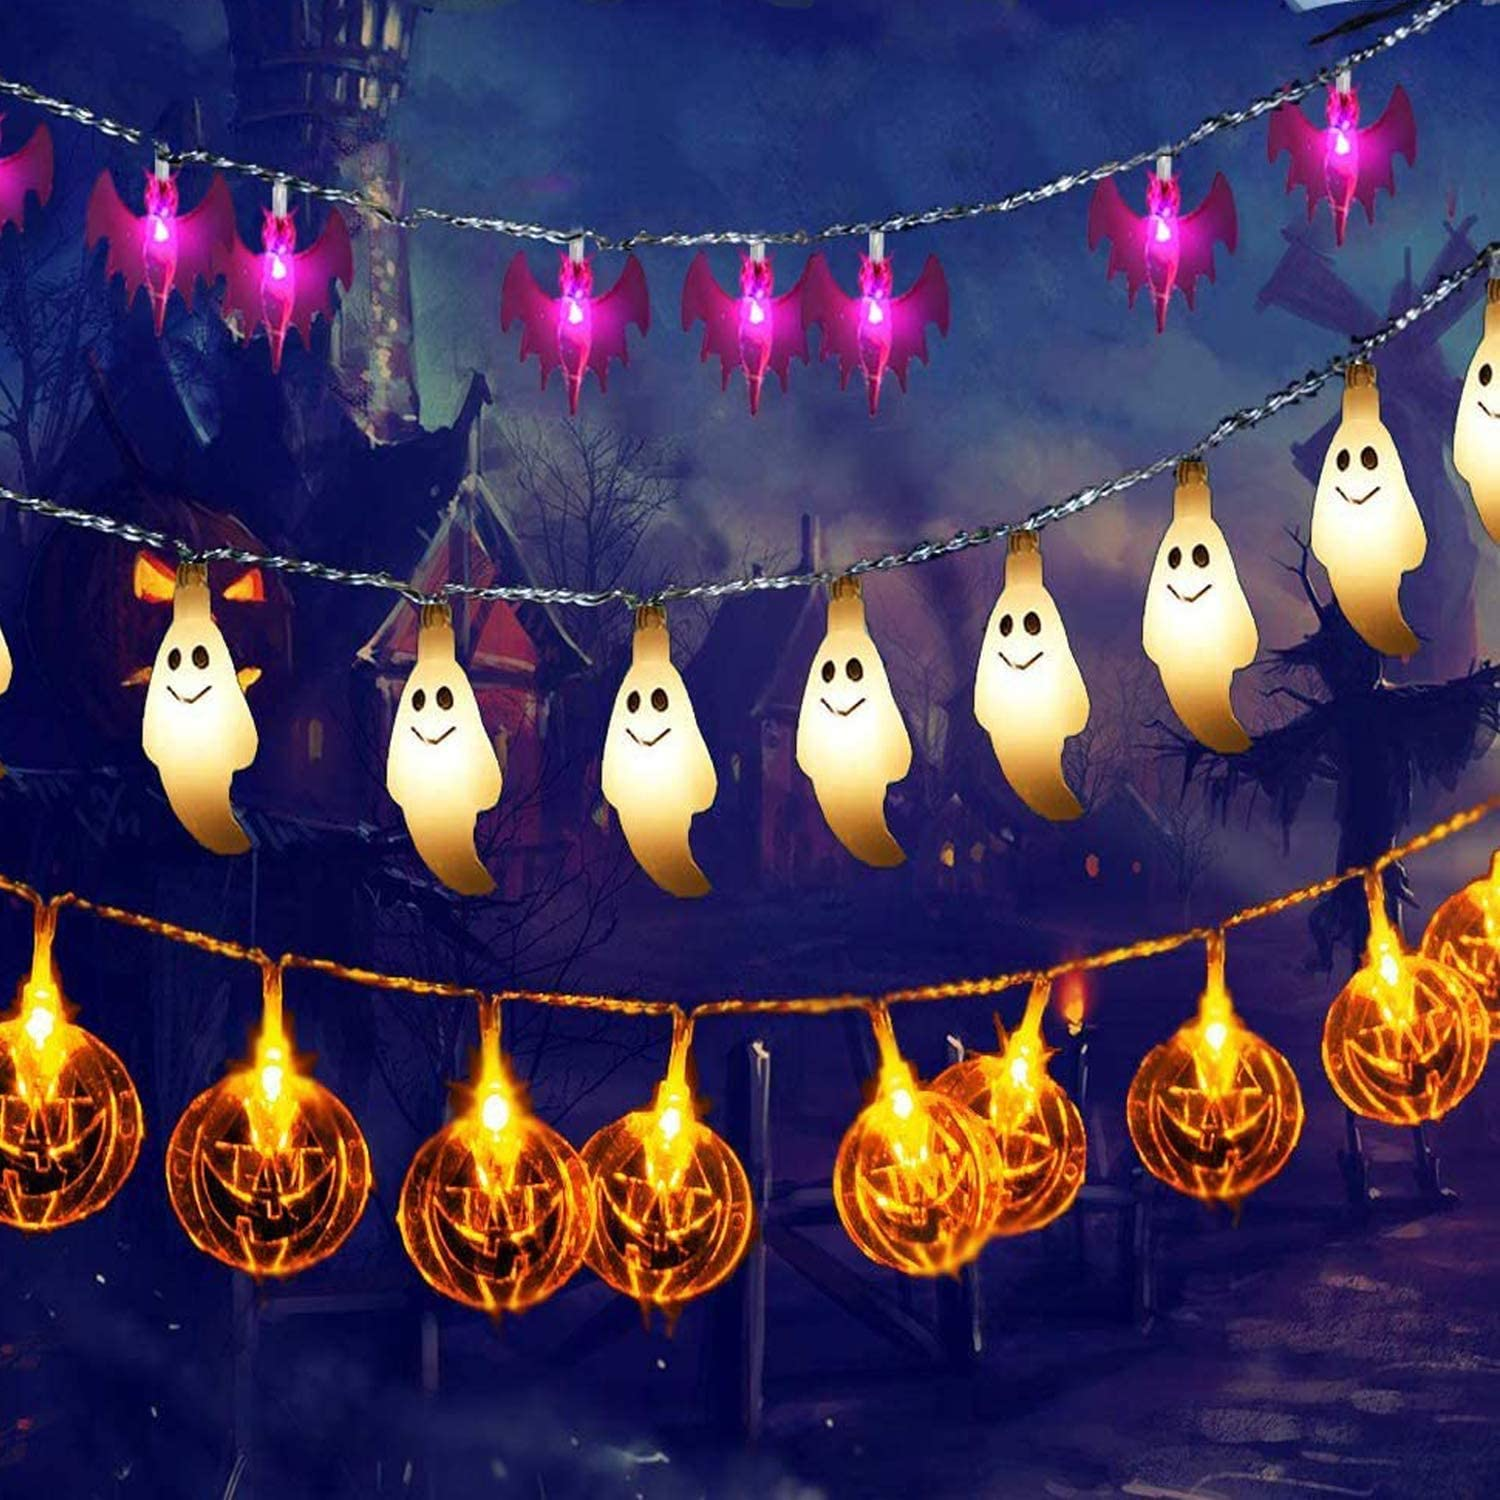 INAROCK Halloween String Lights, Pumpkin Ghost and Bat Halloween Decorations 29.6ft 60 LED String Lights Remote Control Battery Operated Lights for Halloween Outdoor Indoor Party Holiday Yard Decor